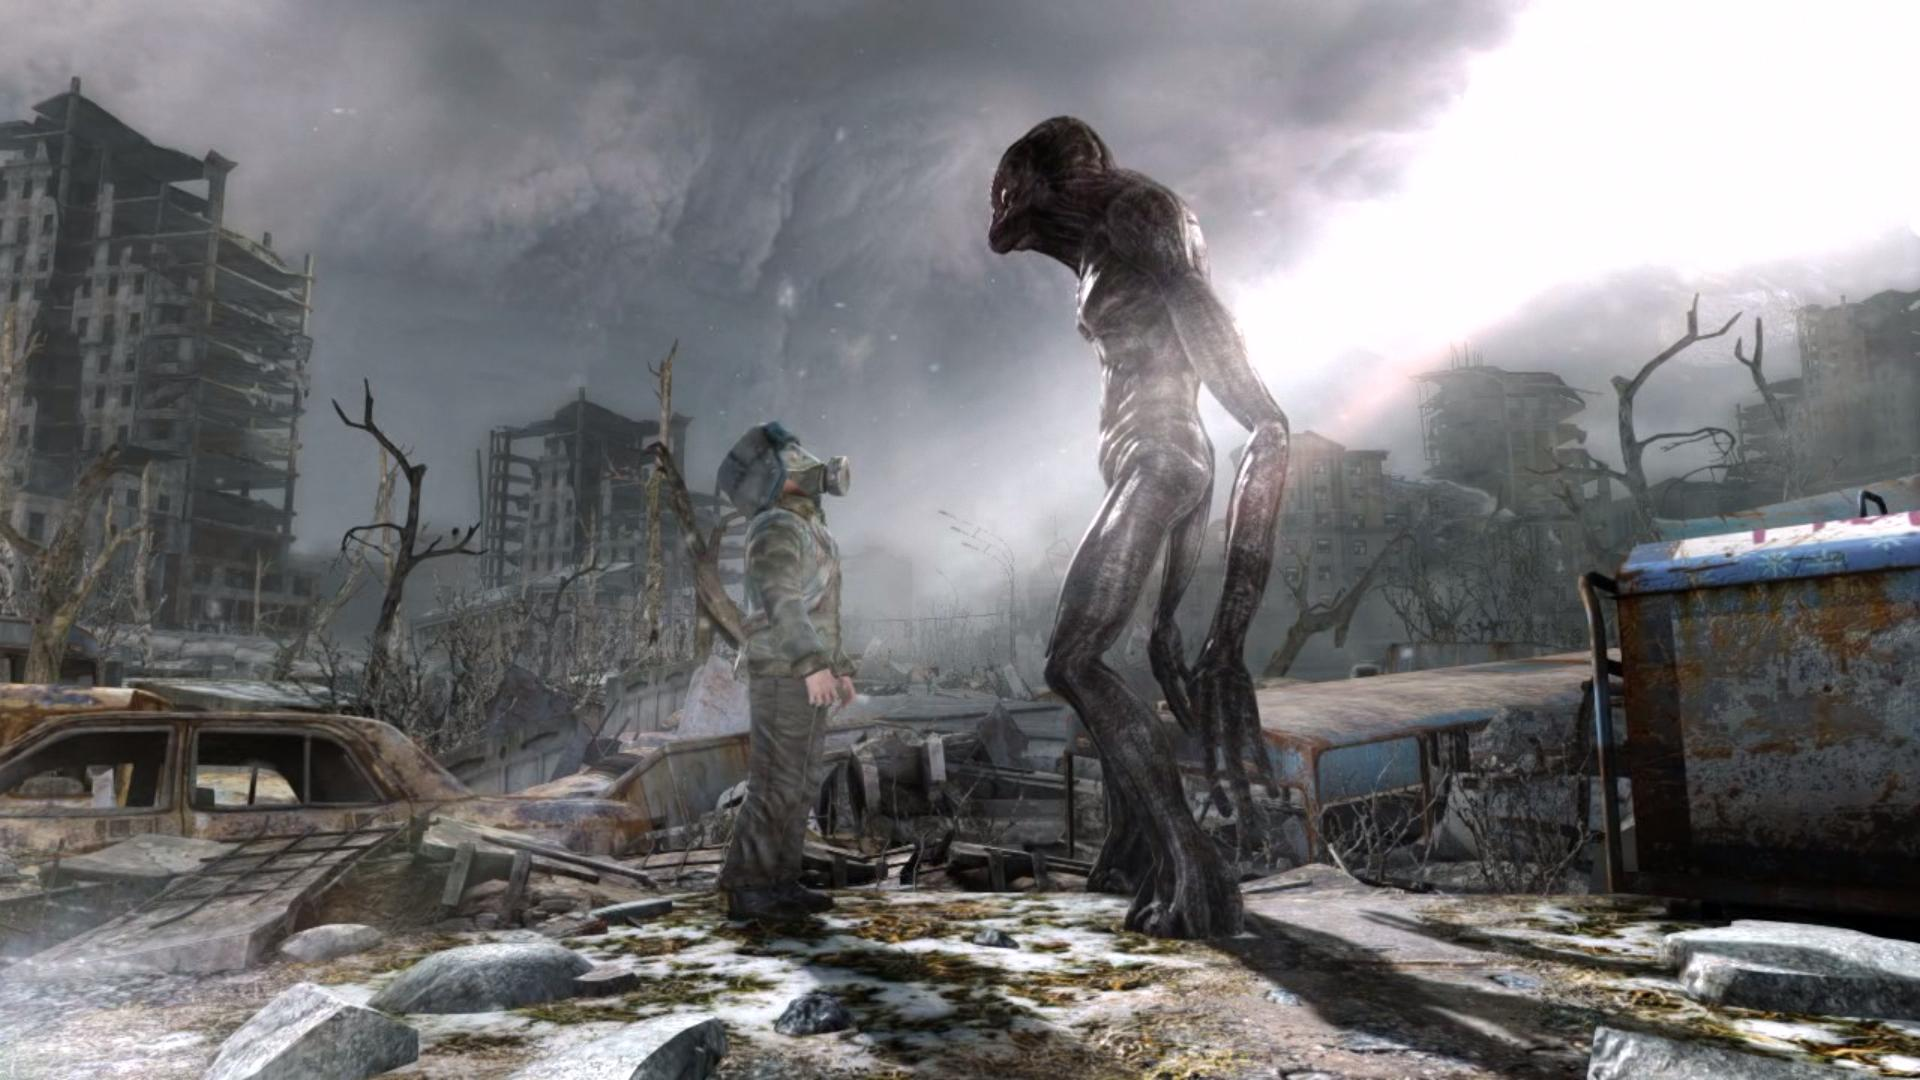 Metro Last Light Wallpaper Hd Wallpapers Fond D Ecran Pour Metro Last Light Pc Ps3